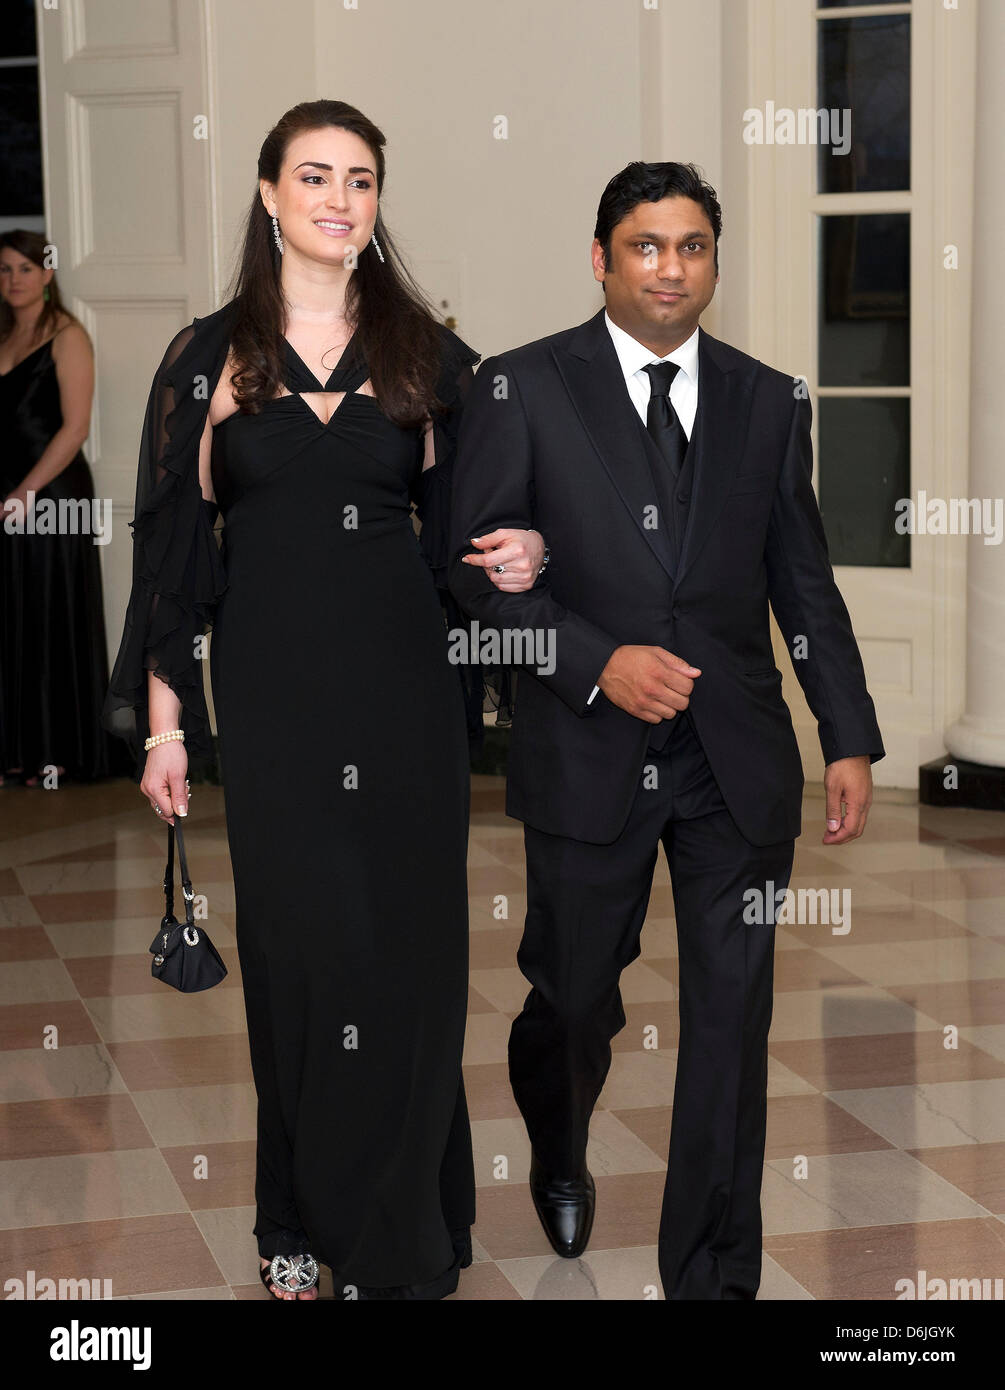 Rajiv Kumar Fernando, CEO of Chopper Trading, and Jennifer Lynn Pelaez arrive for the Official Dinner in honor of Stock Photo